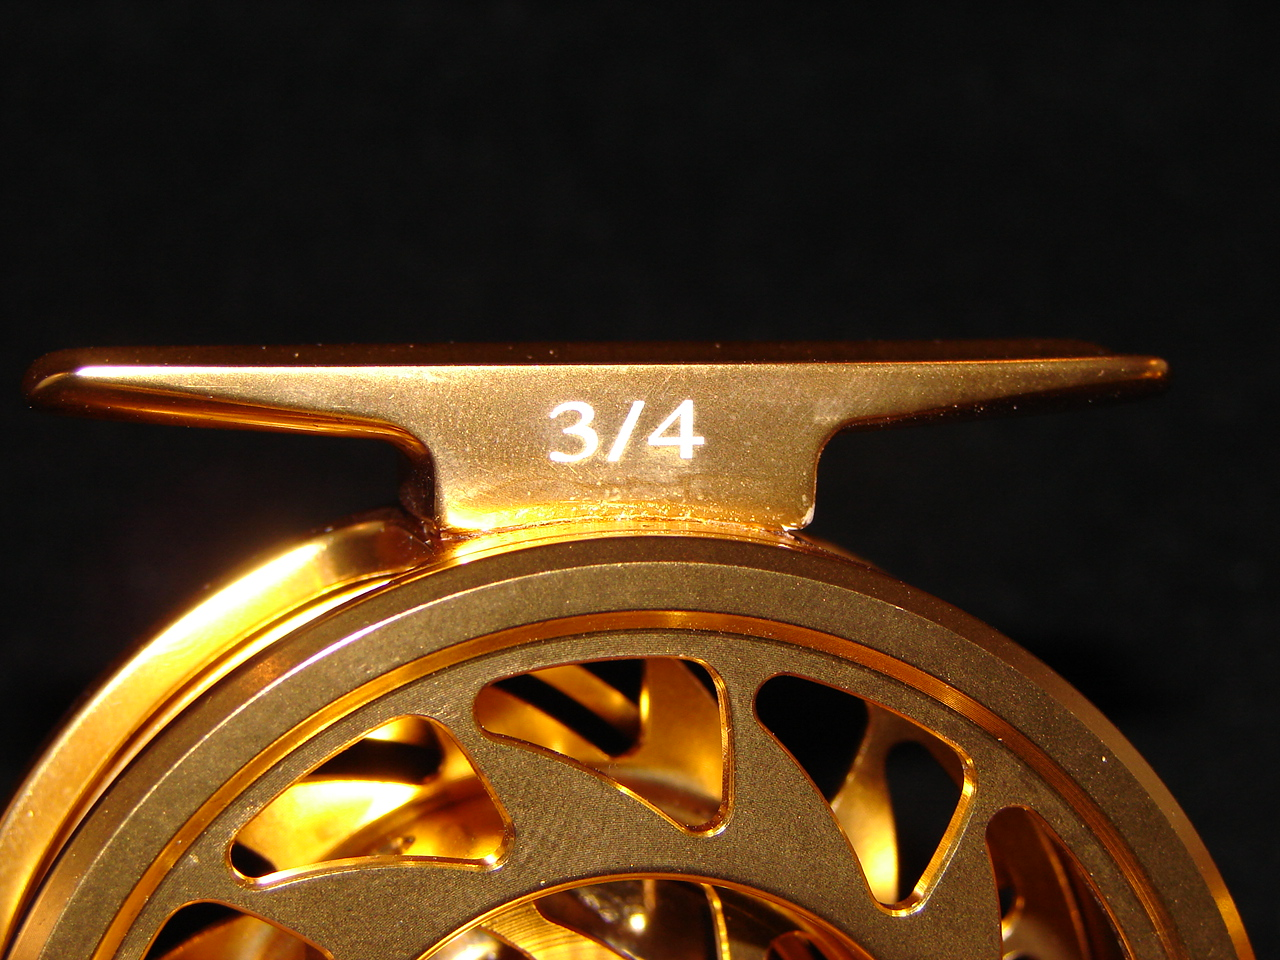 3 4 weight fly reel here